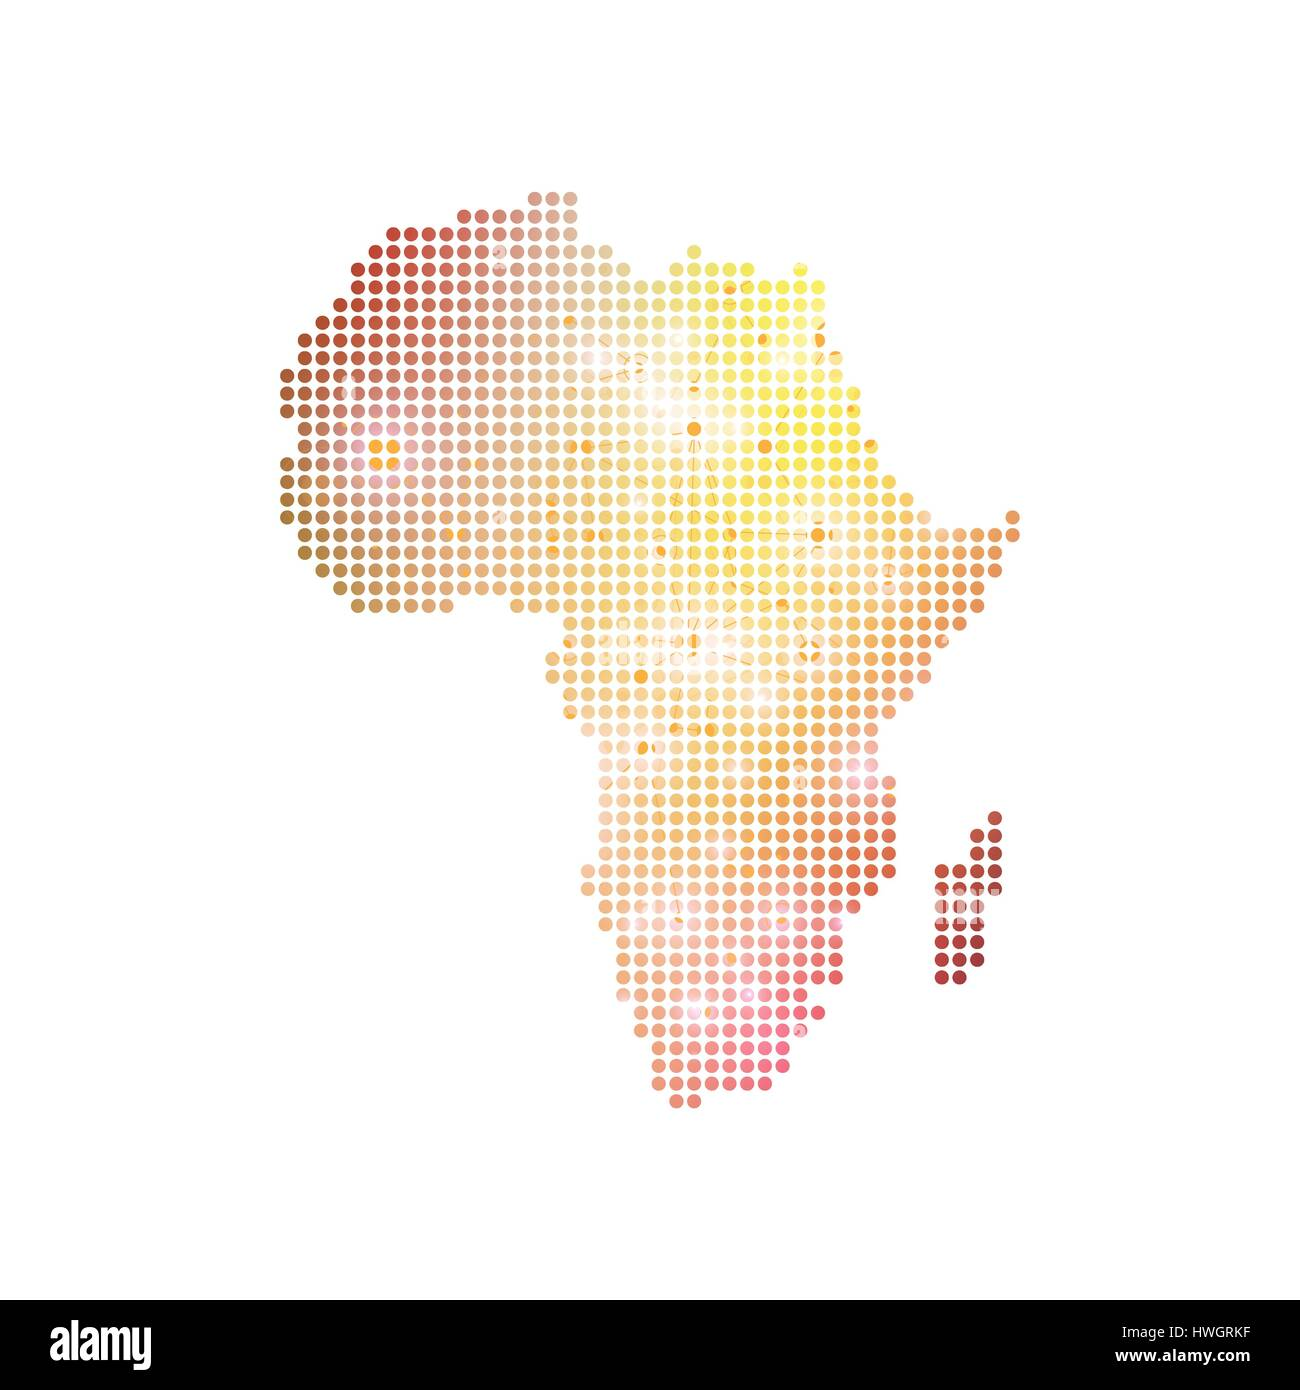 Africa Map Background.Dotted Africa Map Geometric Graphic Background Communication Big